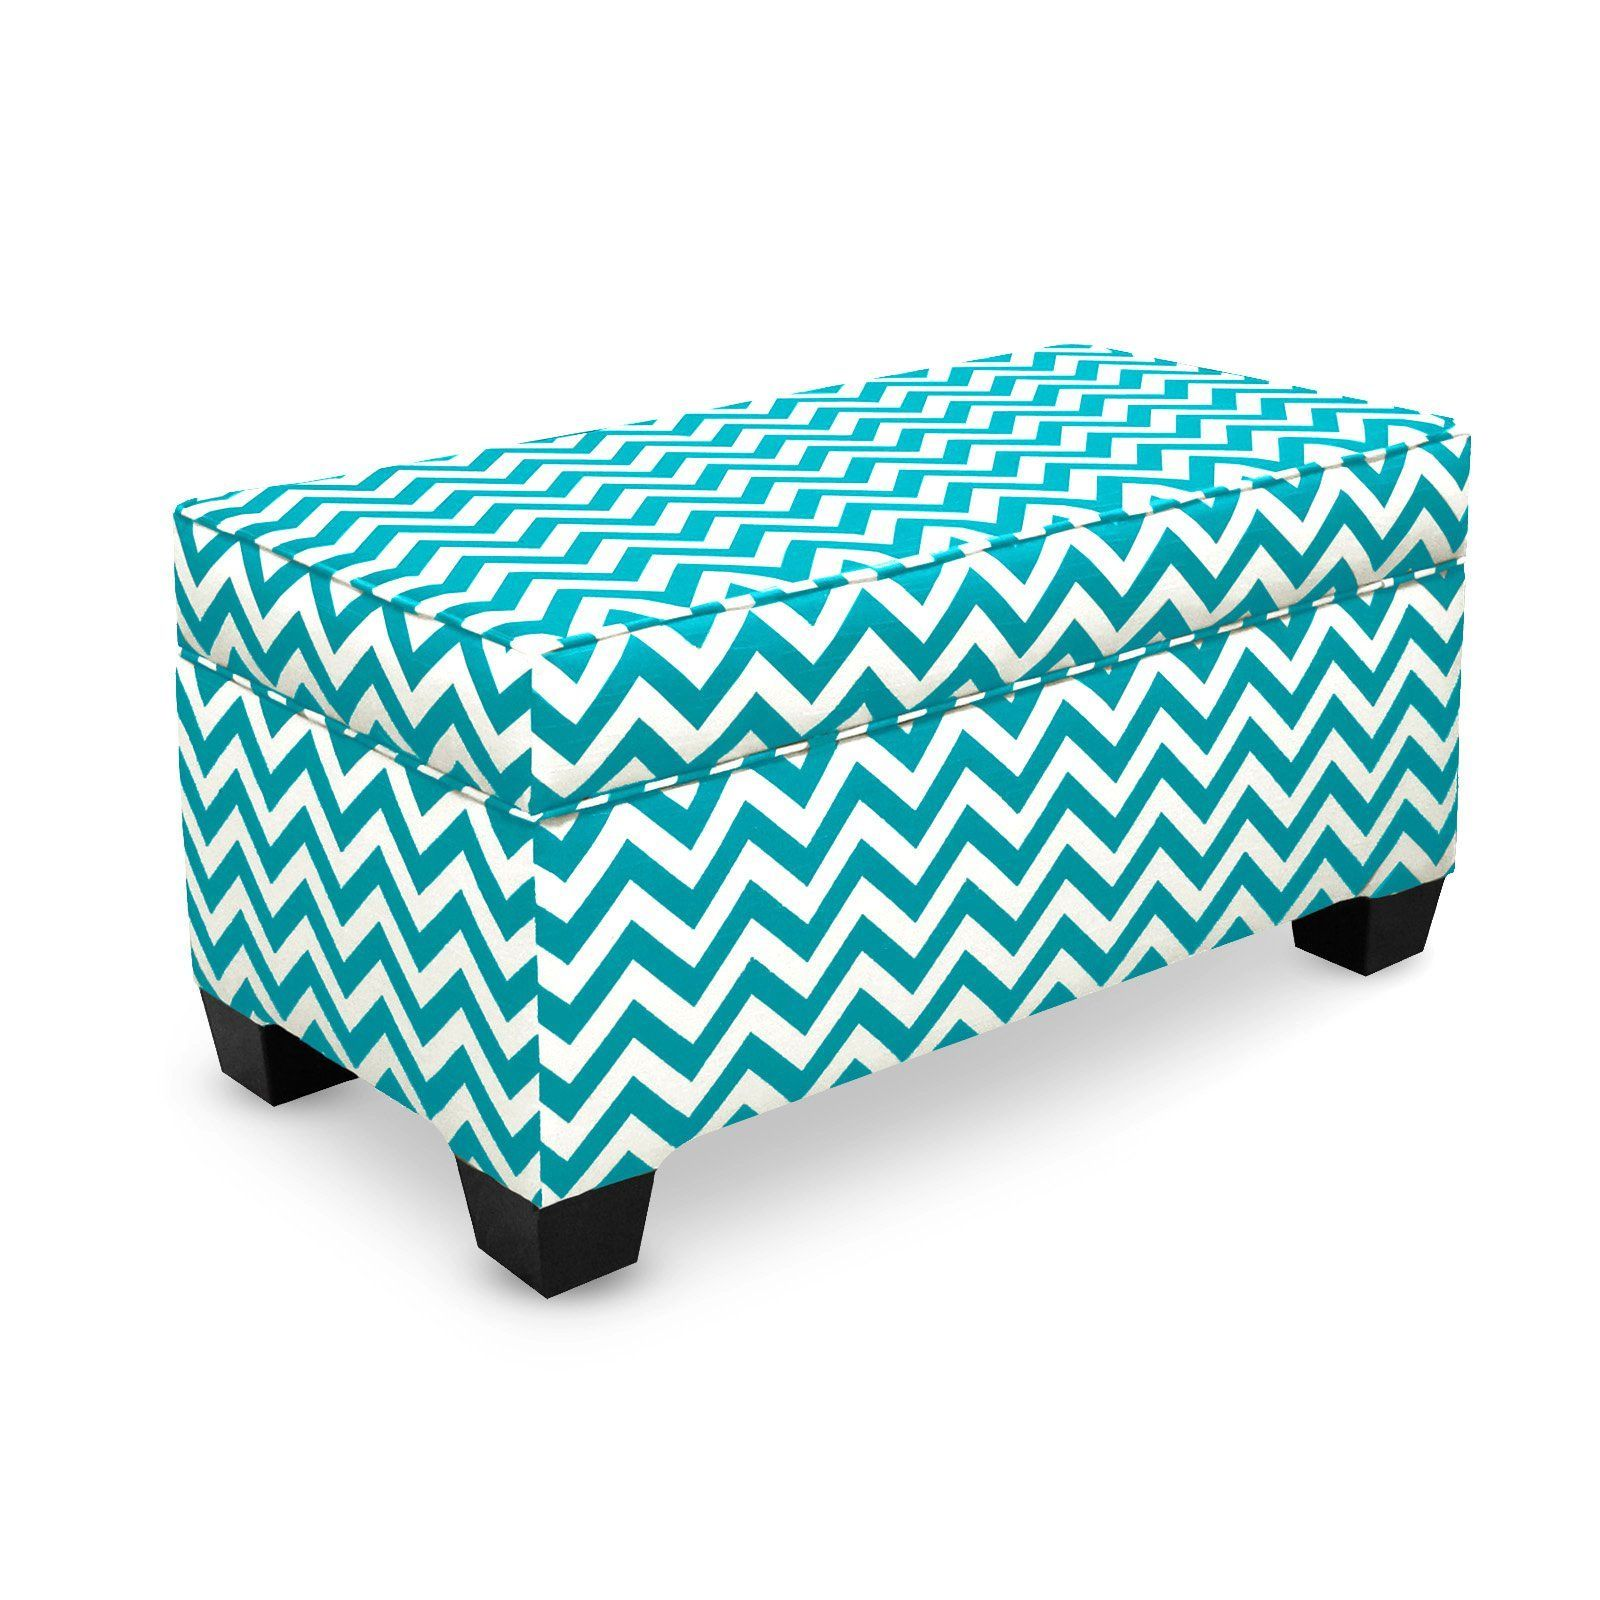 Modus Upholstered Milano Blanket Storage Bench White: Skyline Zig Zag Upholstered Storage Bench Teal And White